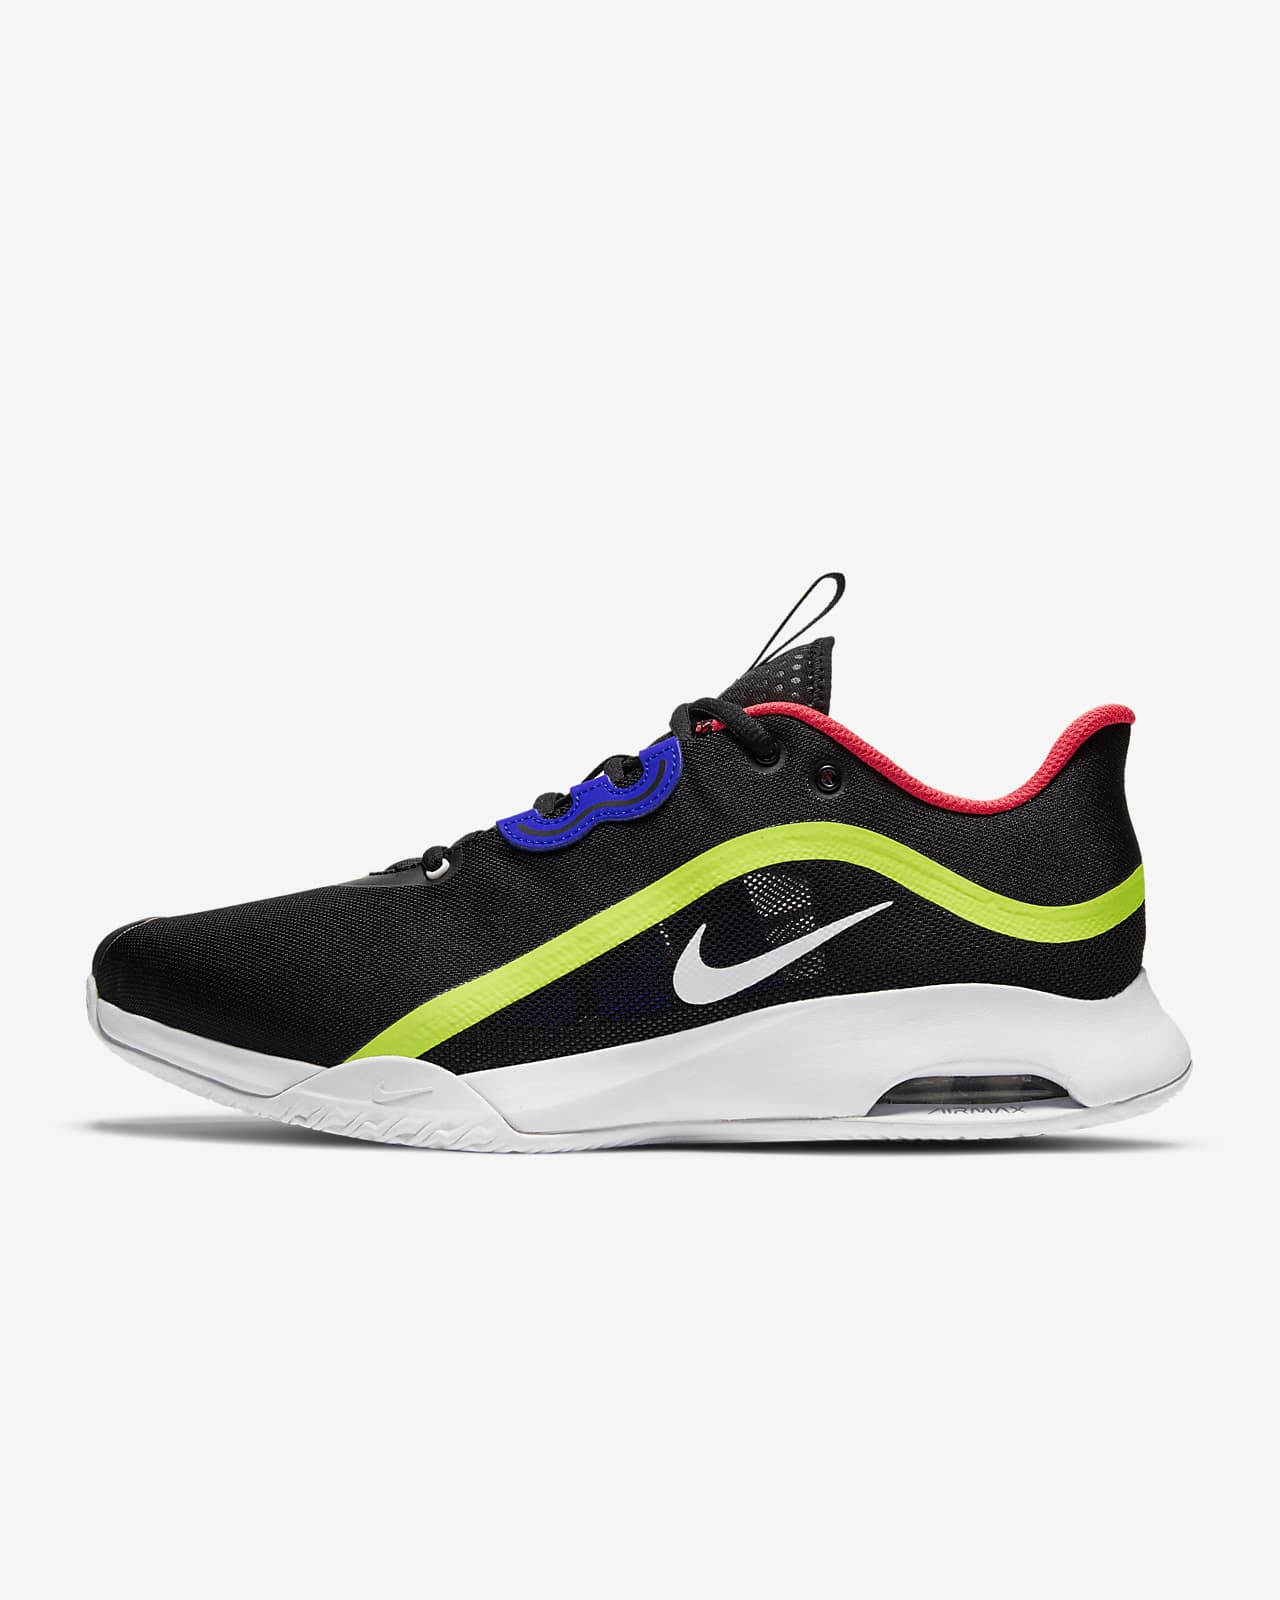 NikeCourt Air Max Volley Men's Hard Court Tennis Shoe